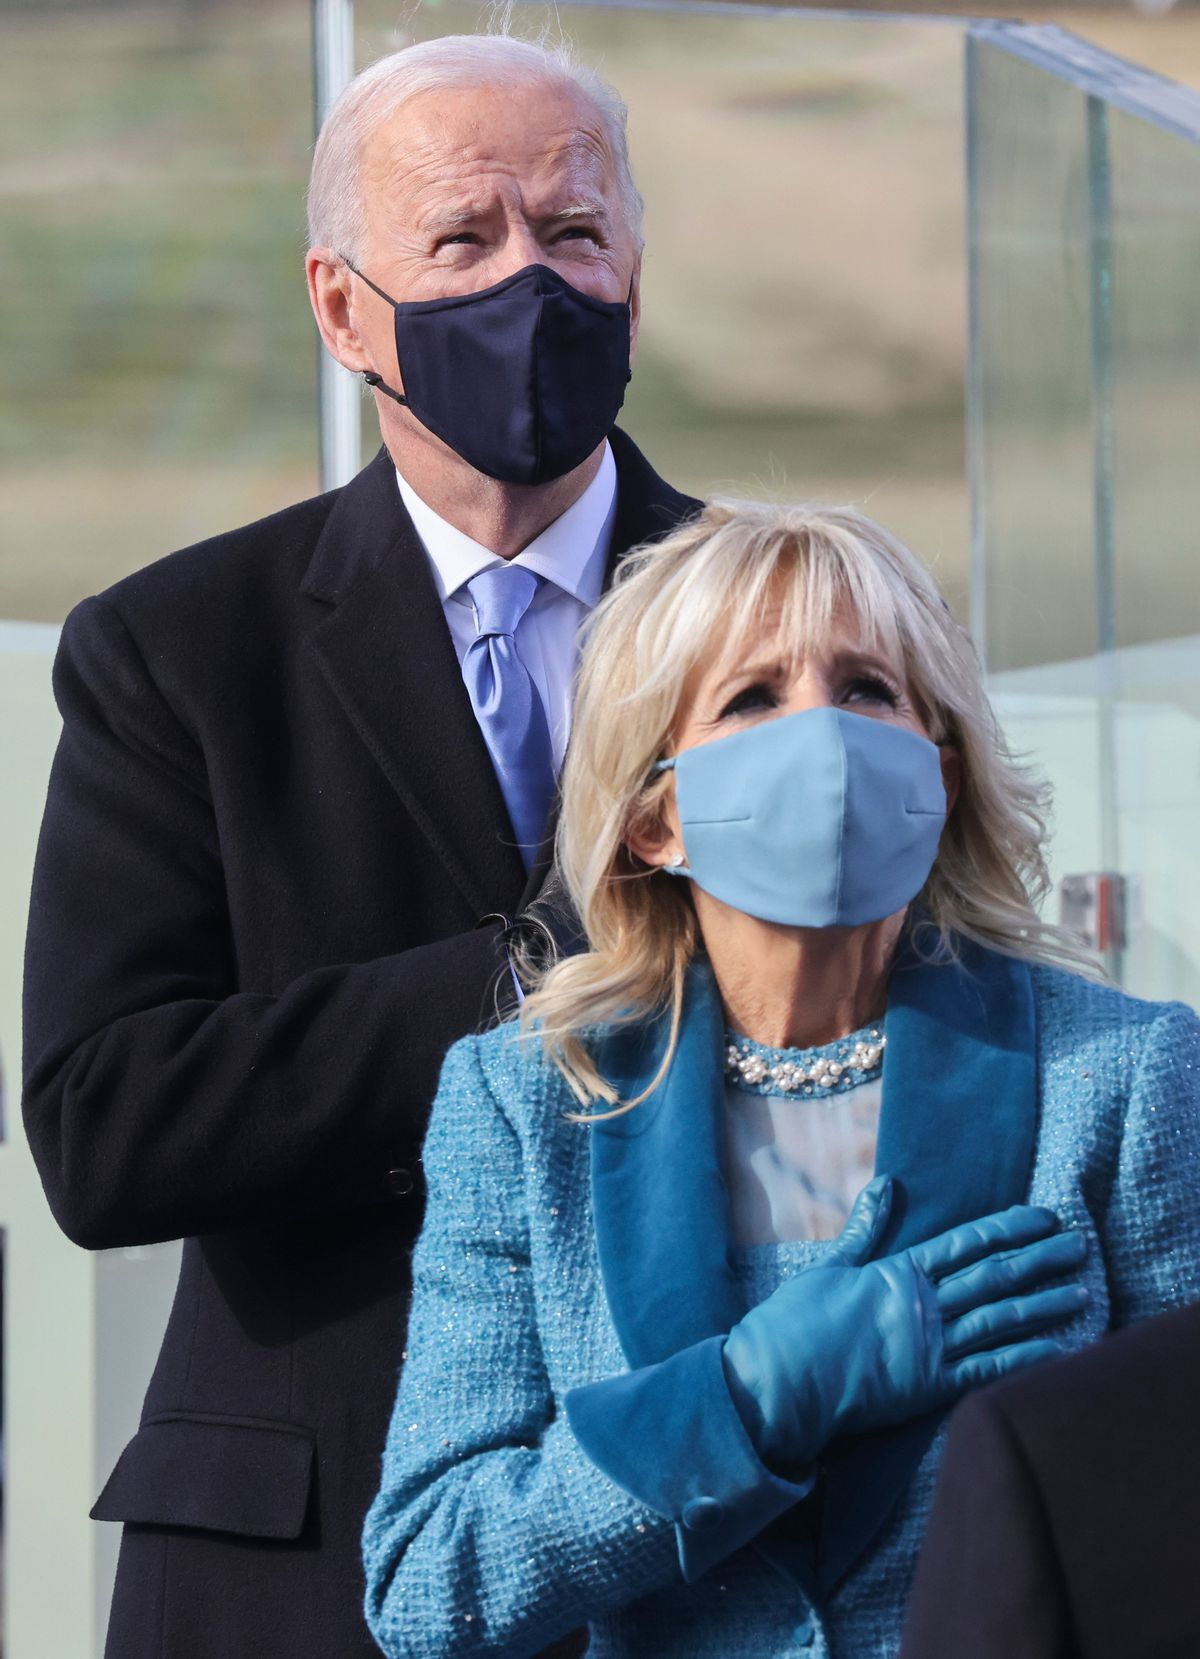 Joe Biden and his wife Jill Biden listen to the Pledge of Allegiance before he is sworn in as the 46th president of the United States on Wednesday.